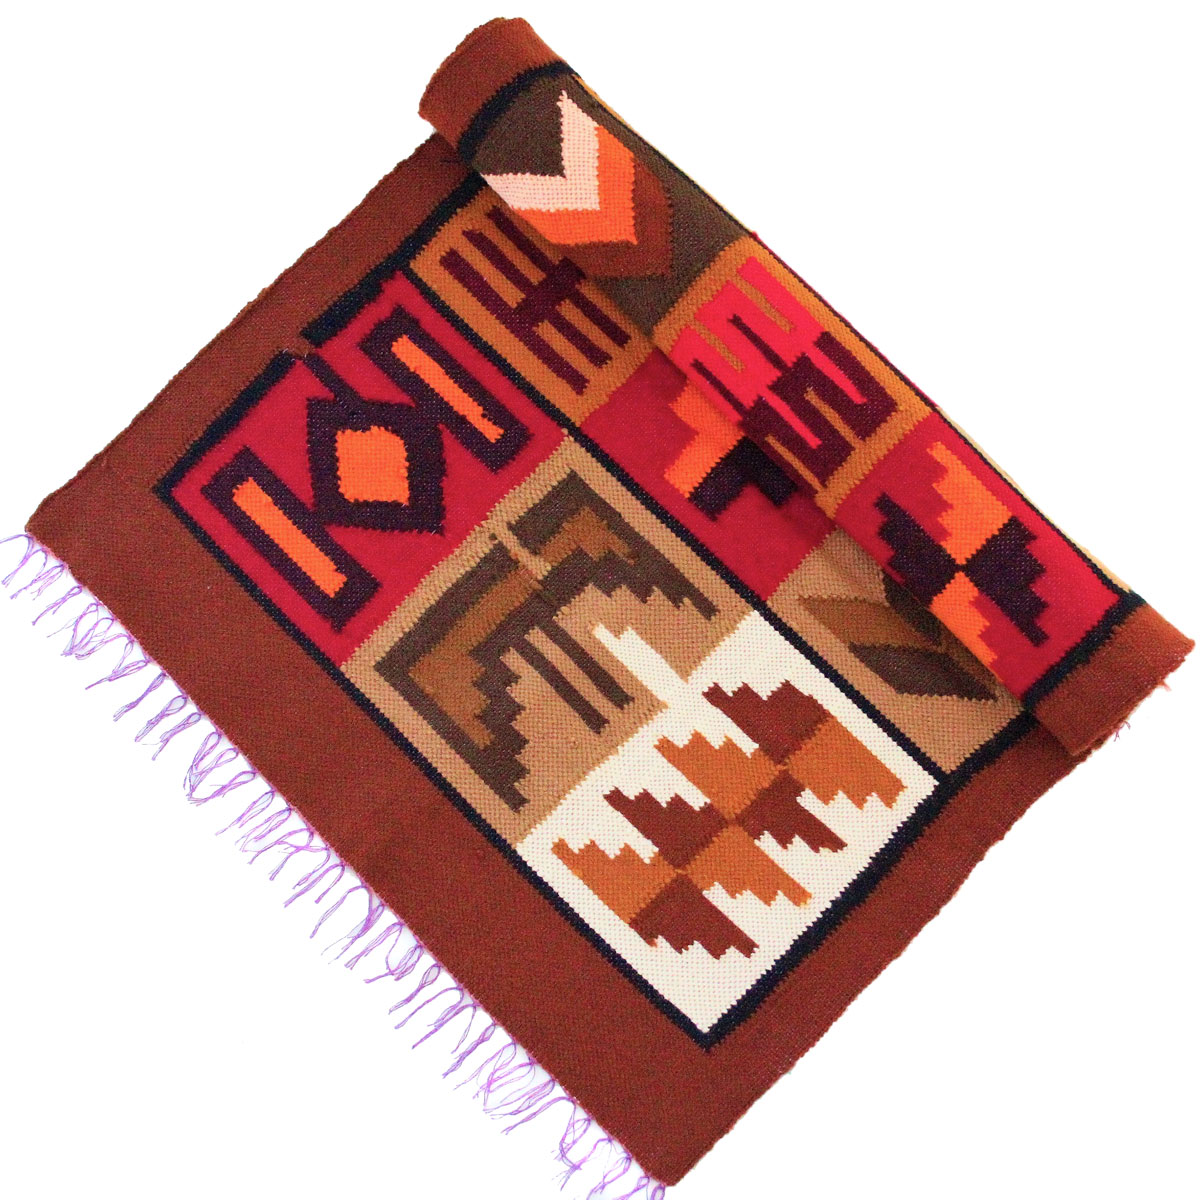 Inka-Products-Tapis Empire Inca-Marron Motifs Ethniques-2